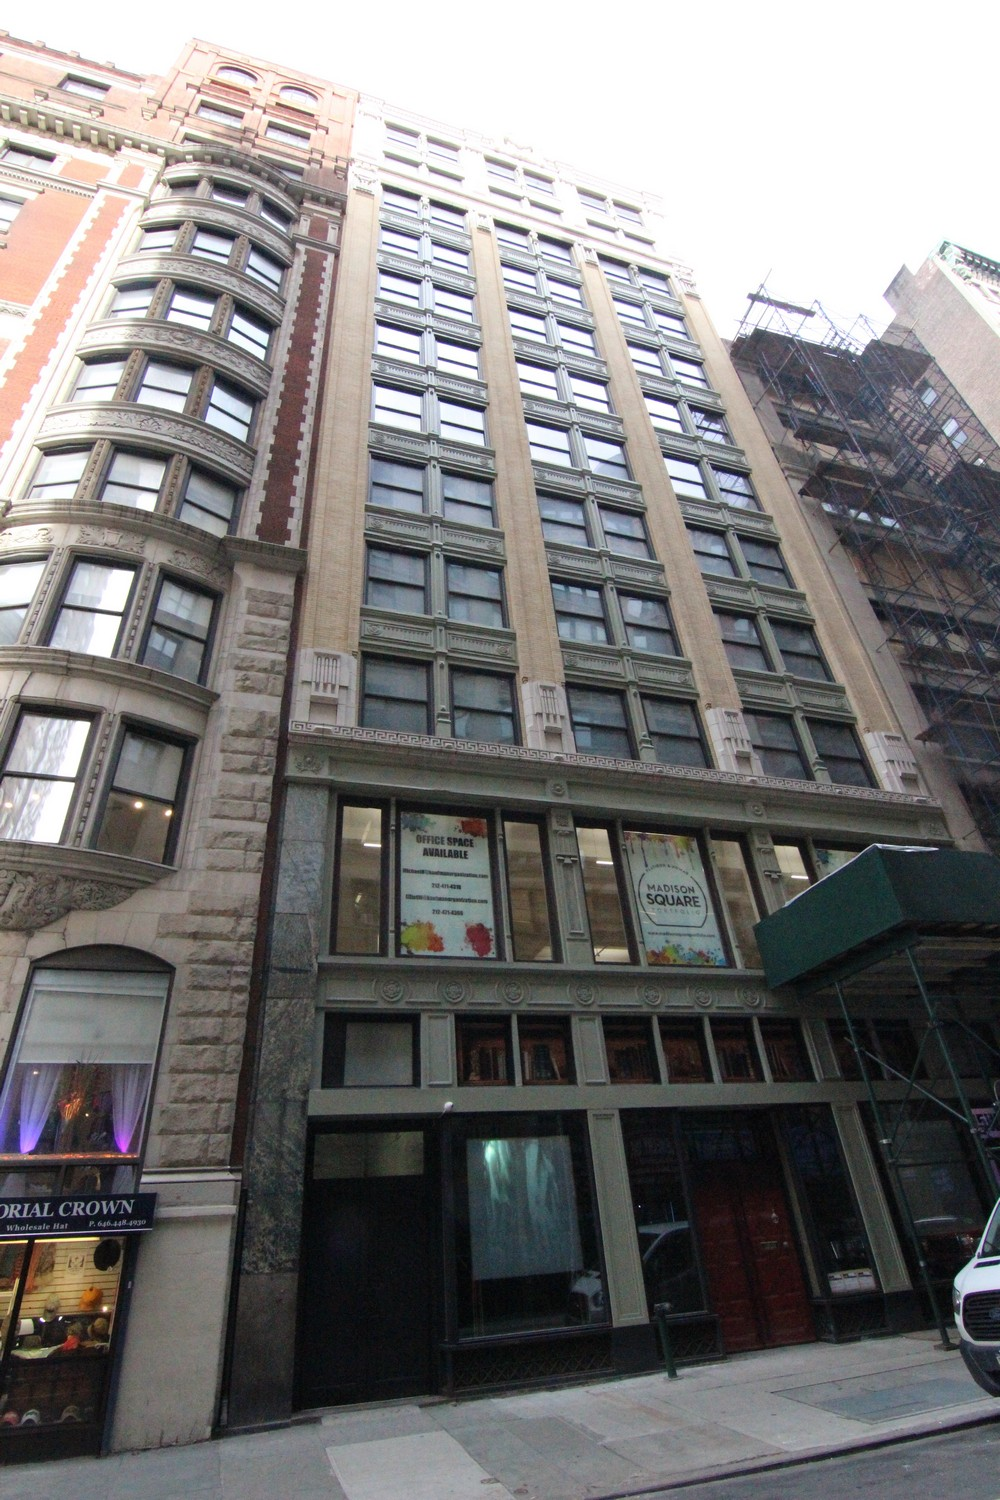 45 West 27th Street Office Building Nyc E Architect